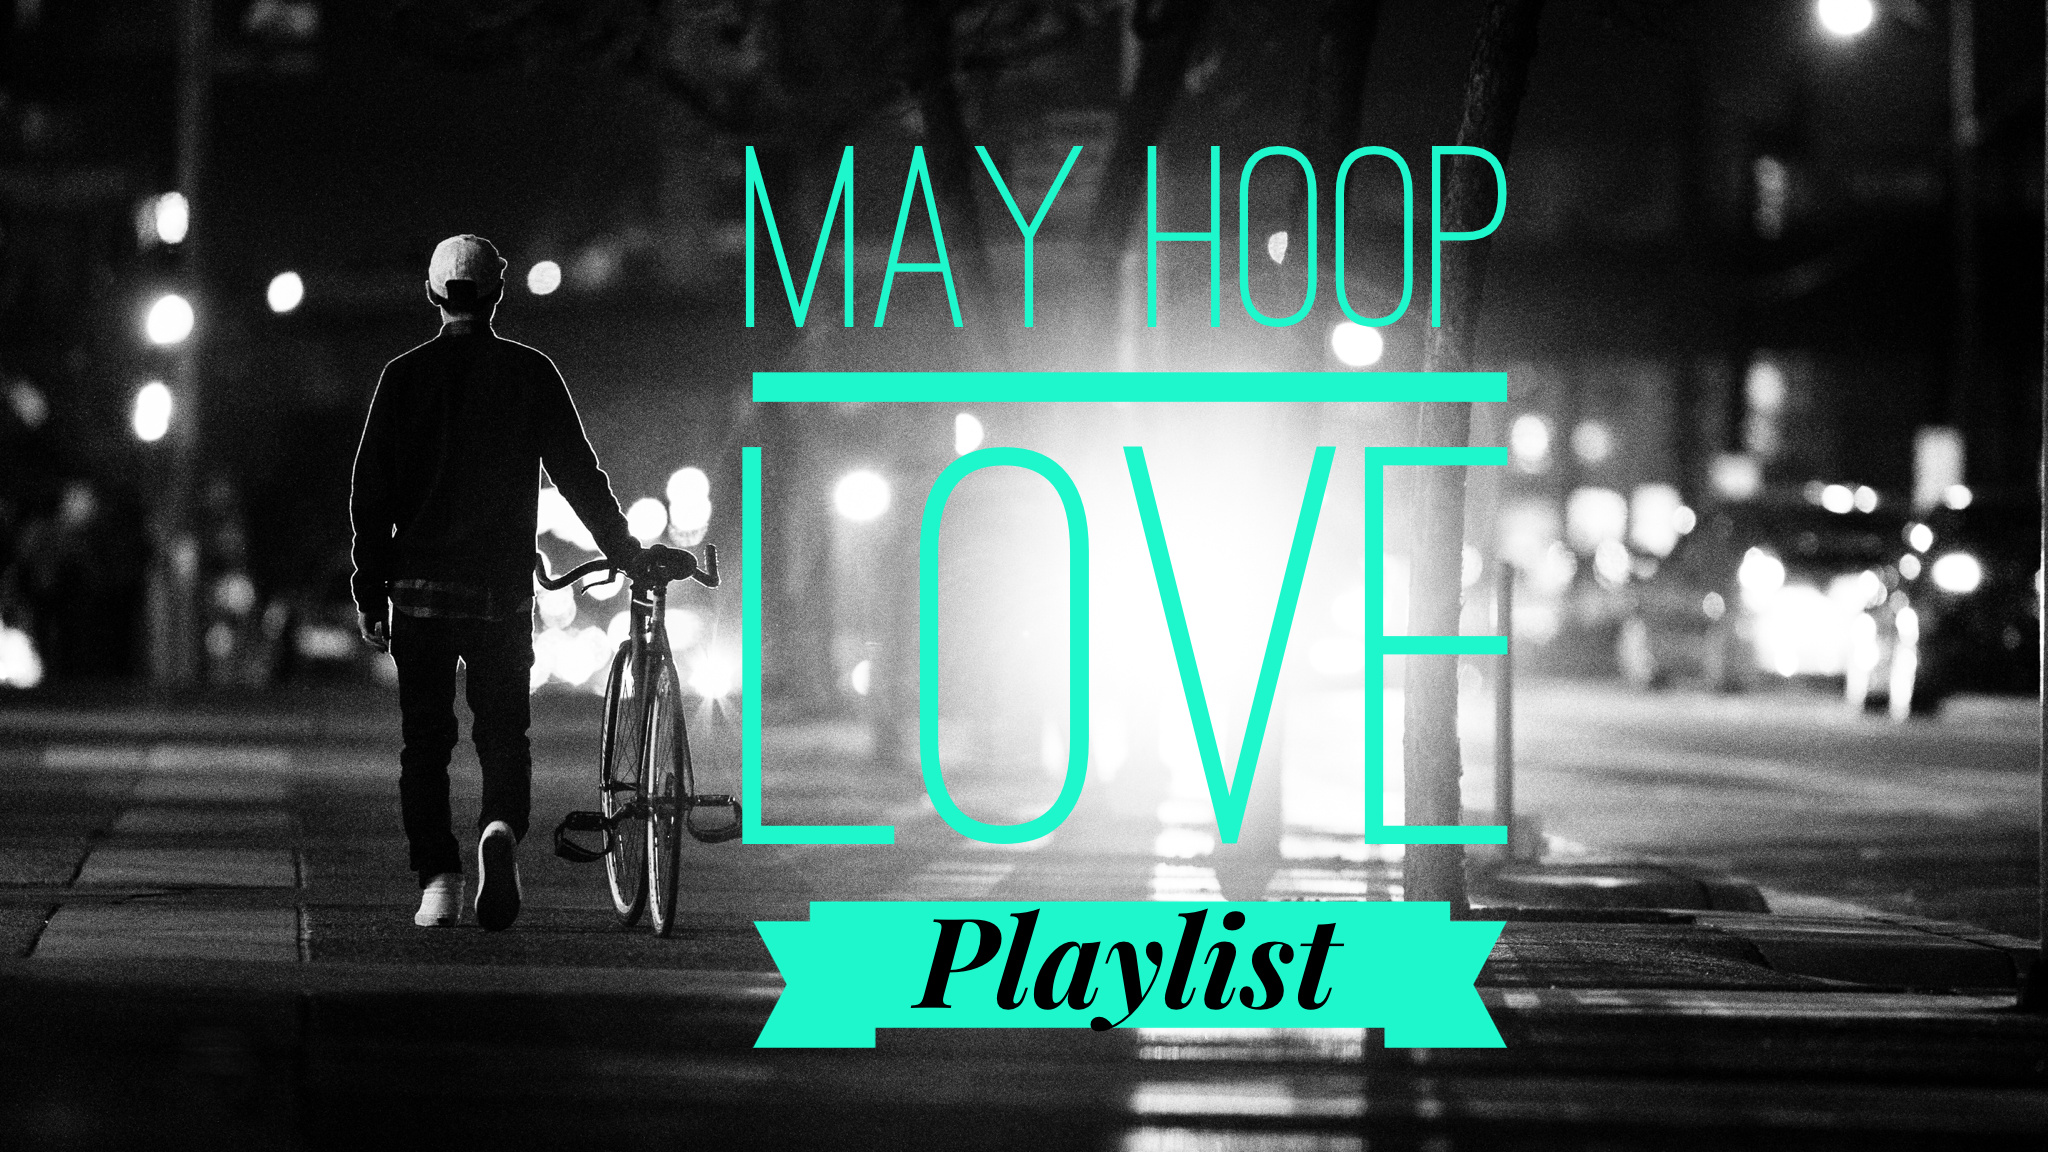 May Hoop Love Playlist. Hoopdance Songs